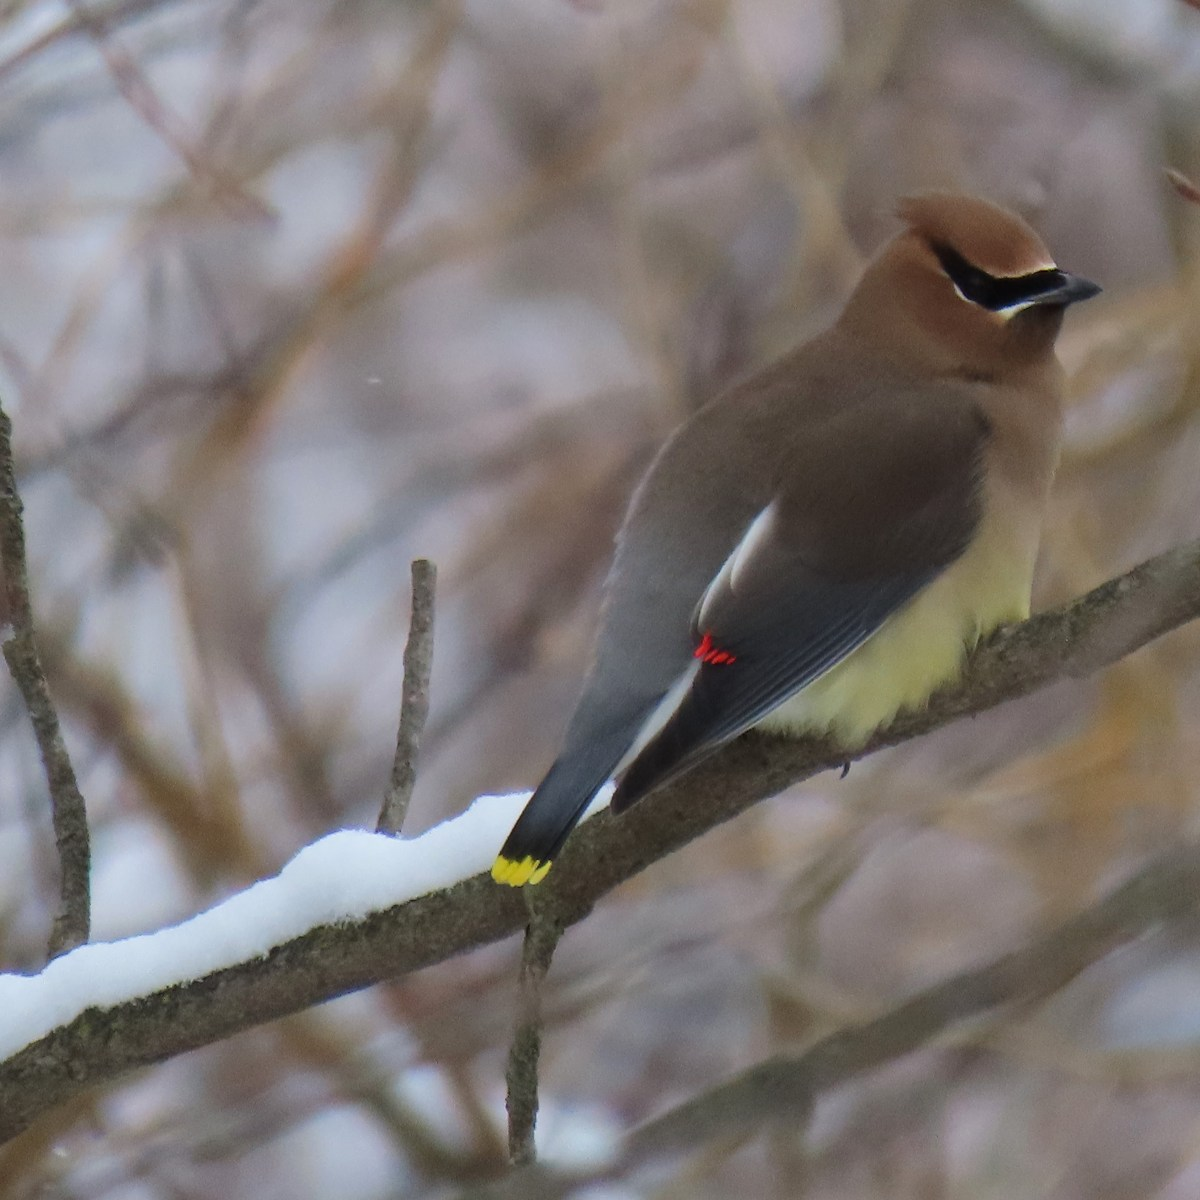 A Cedar Waxwing perched on a snow-covered branch